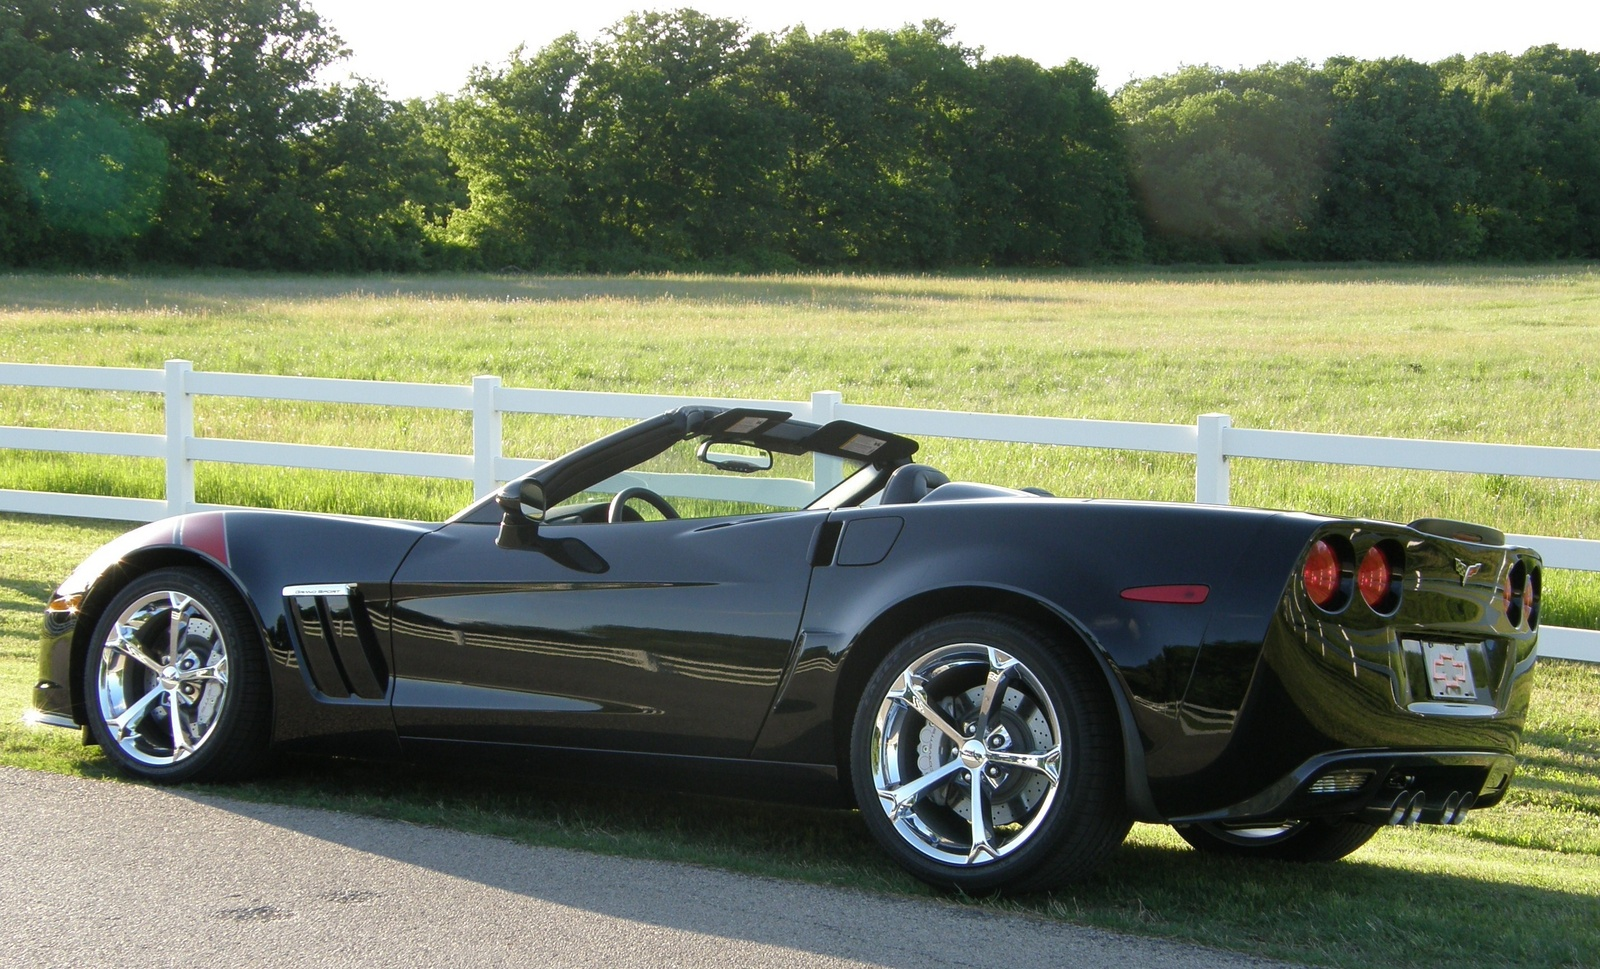 2010 chevrolet corvette grand sport convertible 1lt for sale html autos weblog. Black Bedroom Furniture Sets. Home Design Ideas